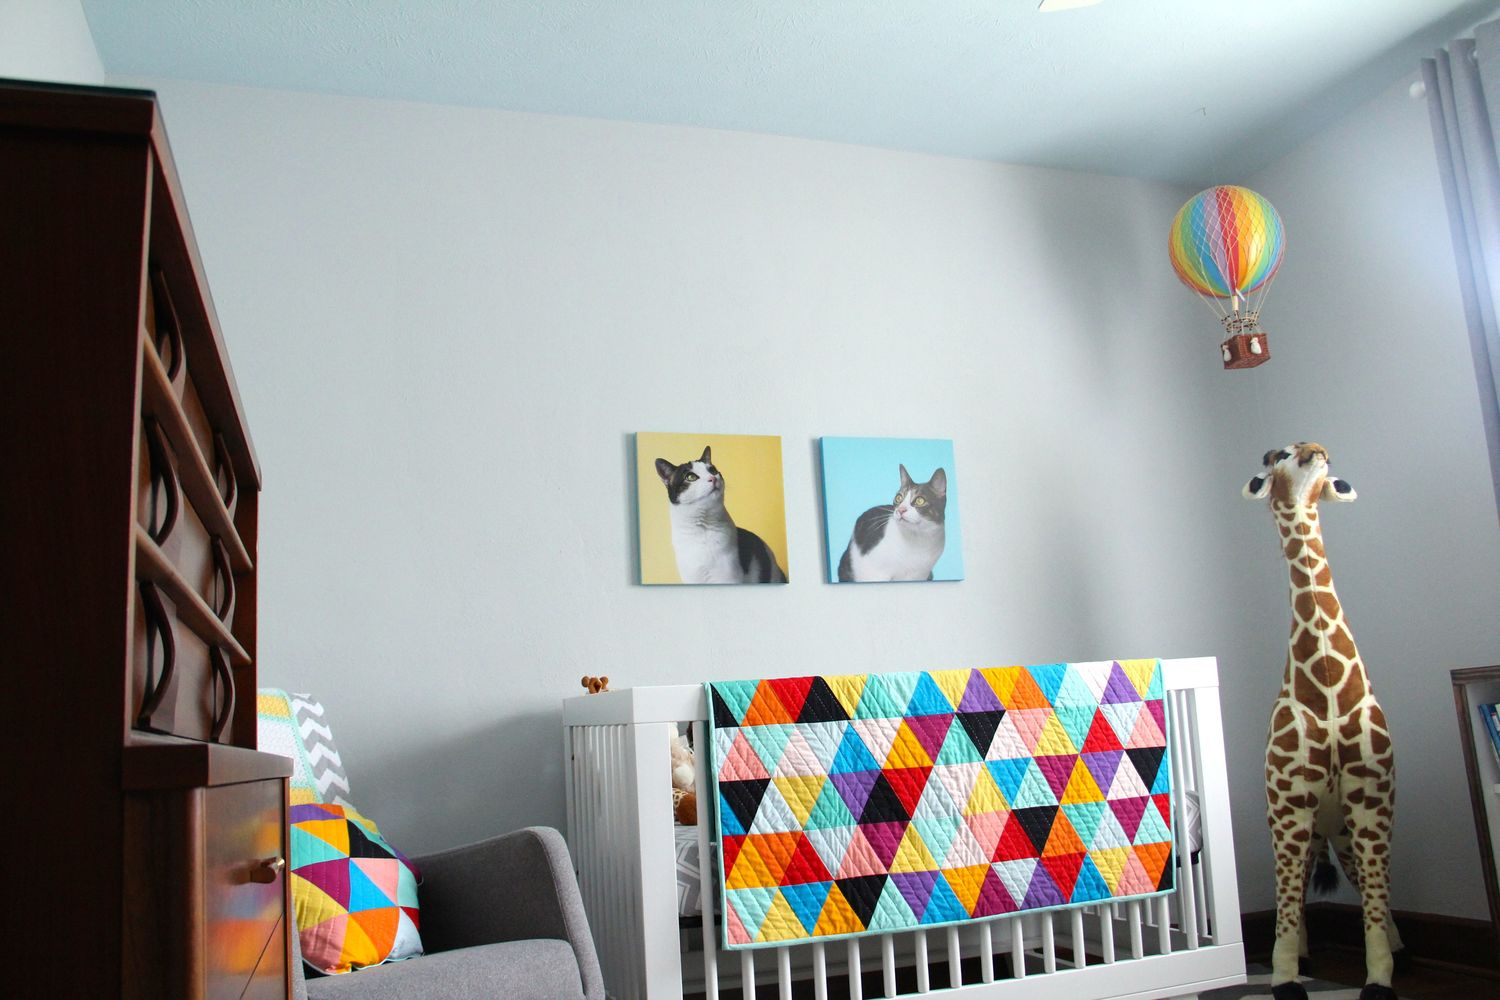 Vibrant colors in the ceiling paint and decorations give this nursery a whimsical flair.